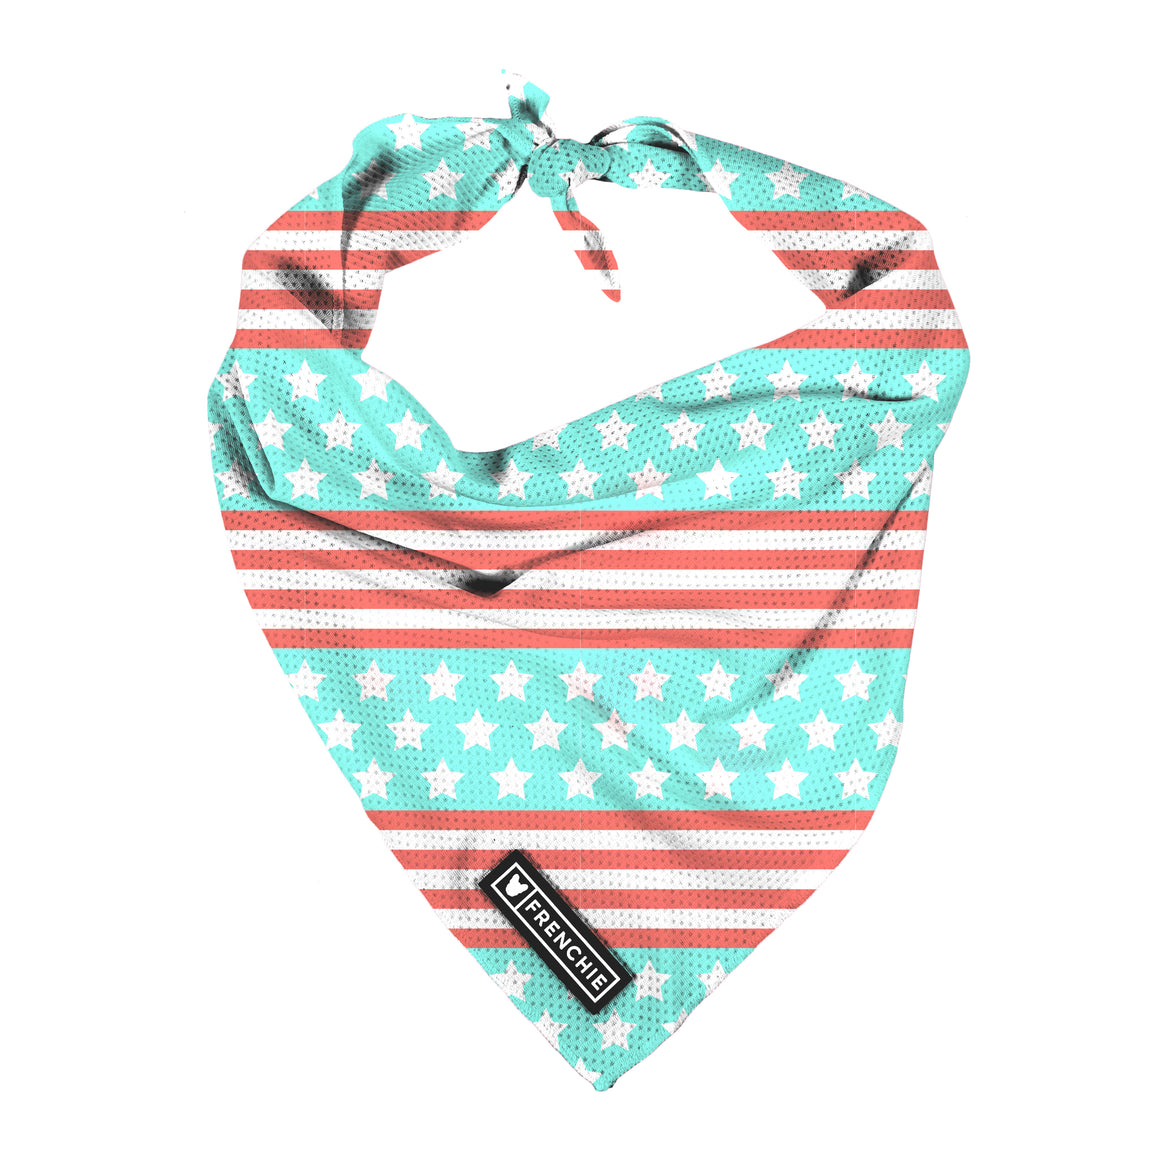 Frenchie Cooling Bandana- Stars and Stripes